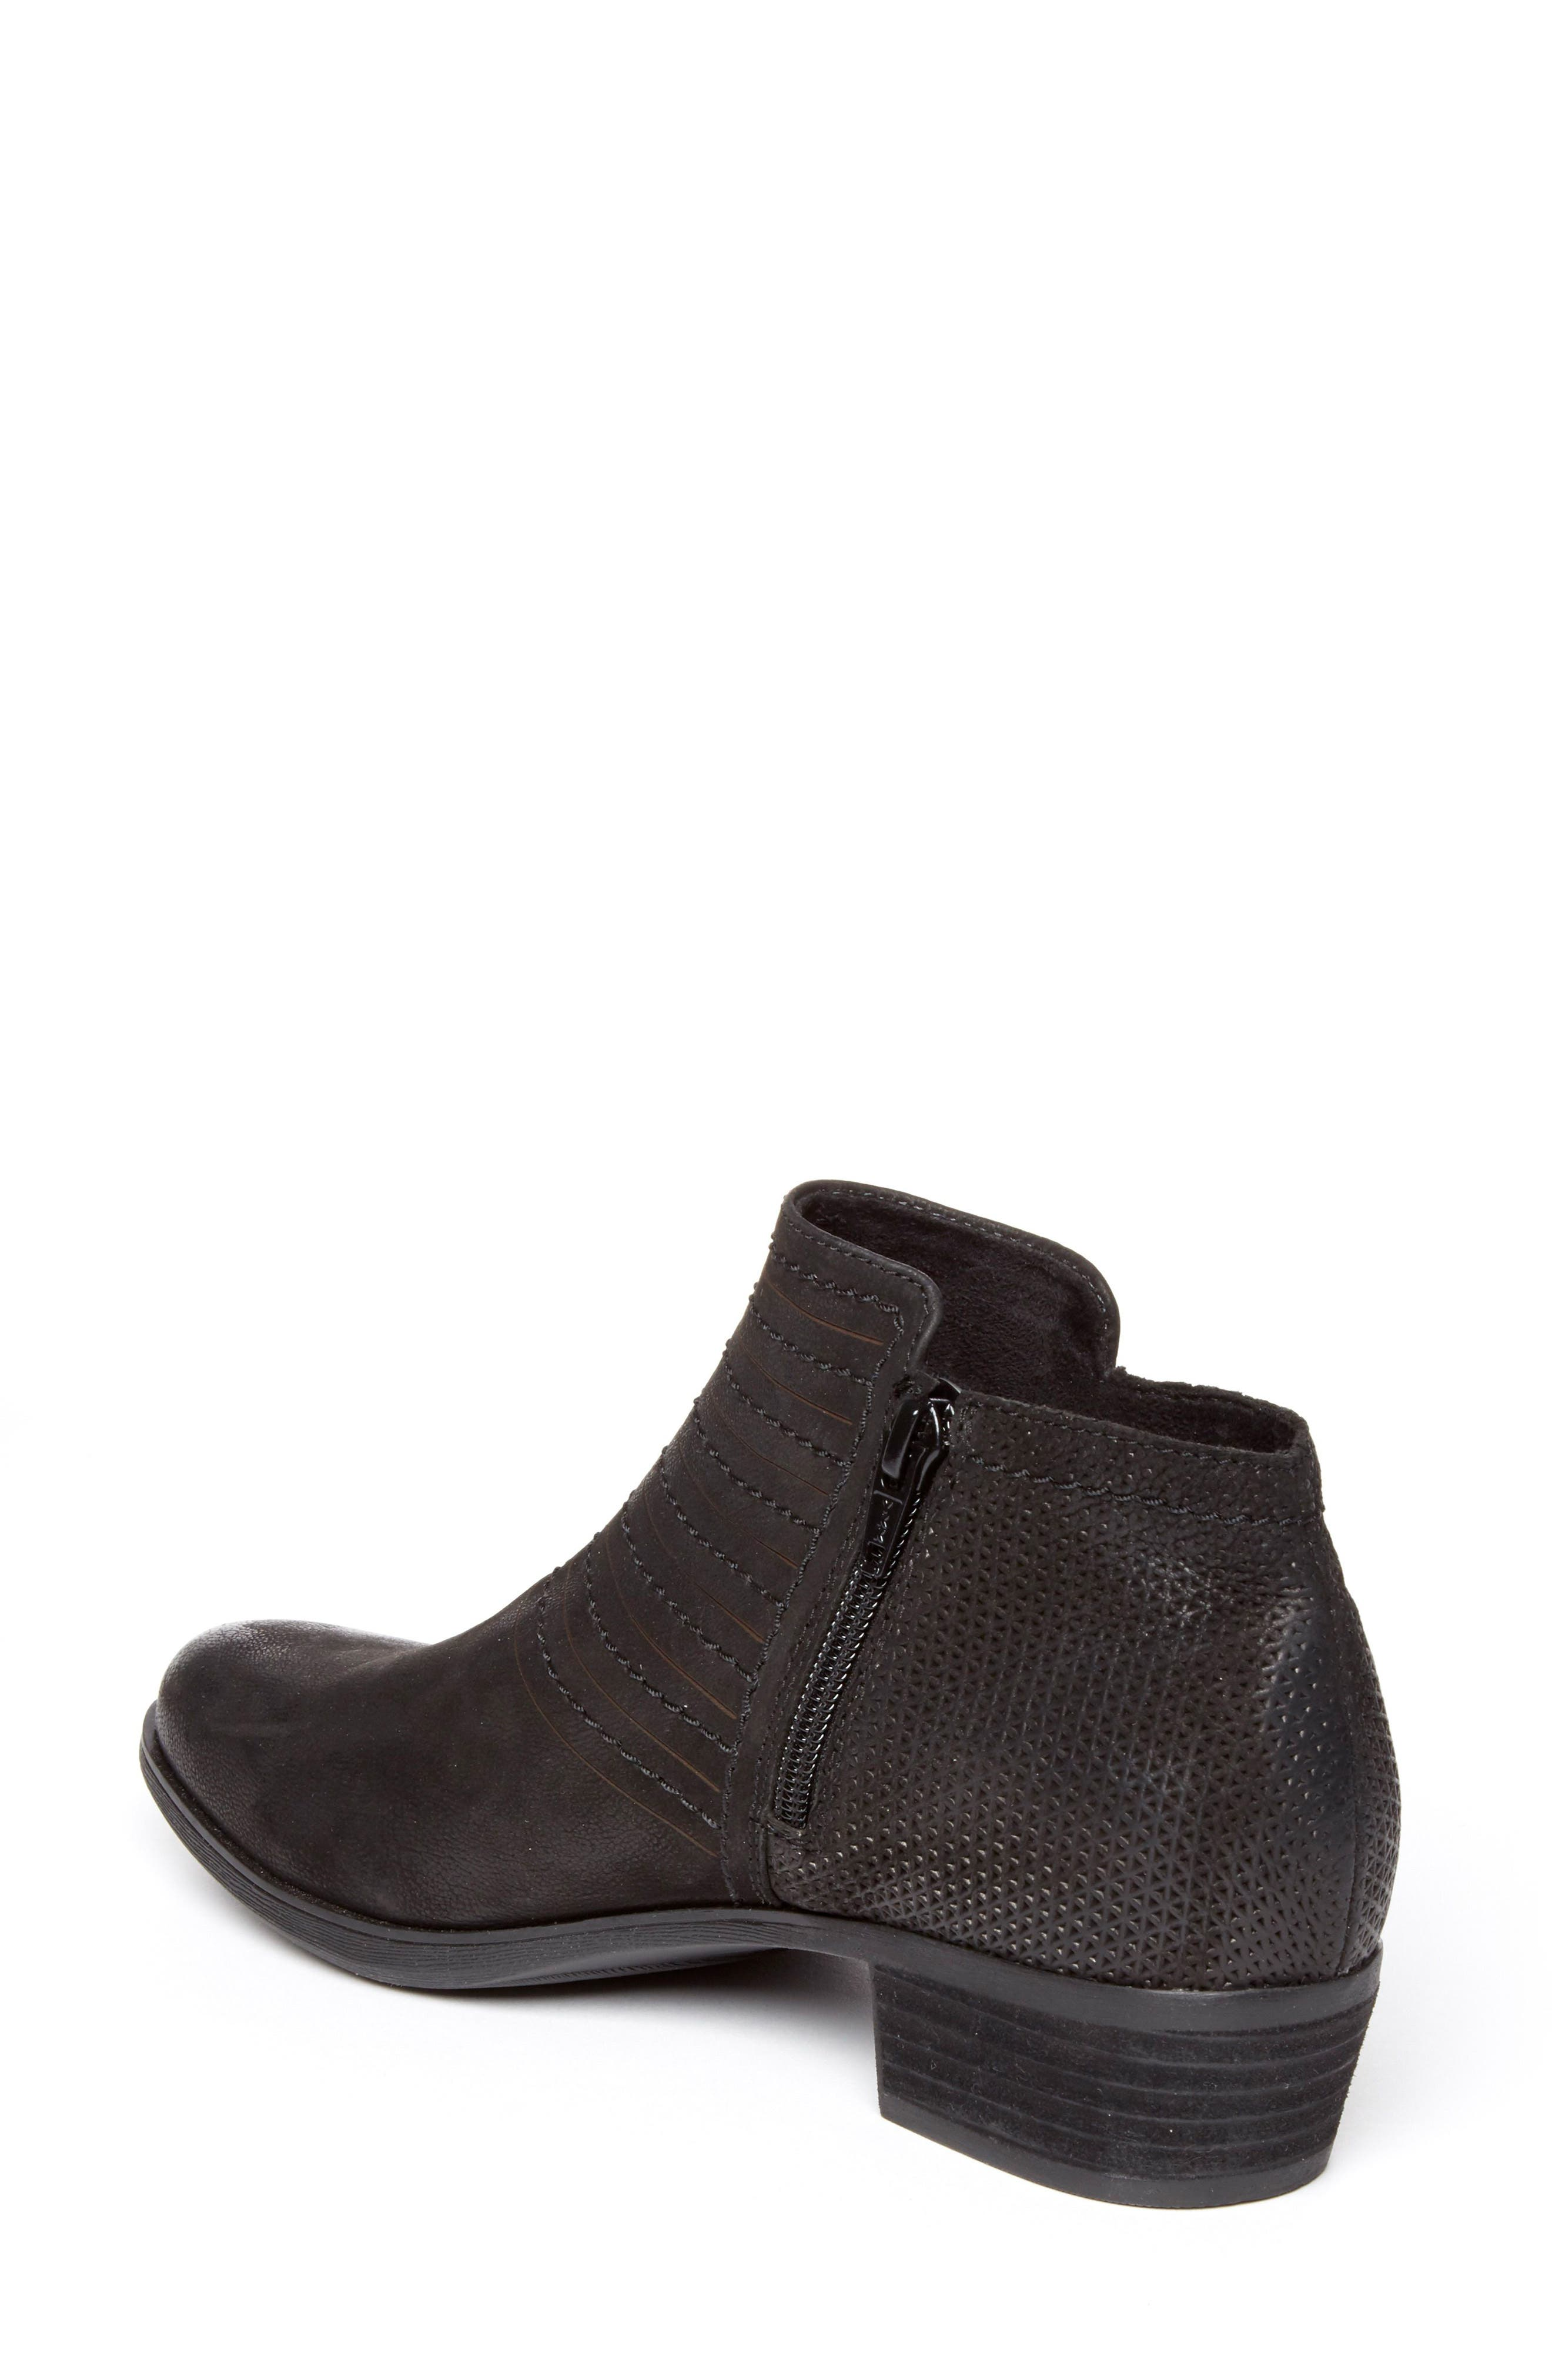 ROCKPORT,                             Vanna Strappy Bootie,                             Alternate thumbnail 2, color,                             BLACK NUBUCK